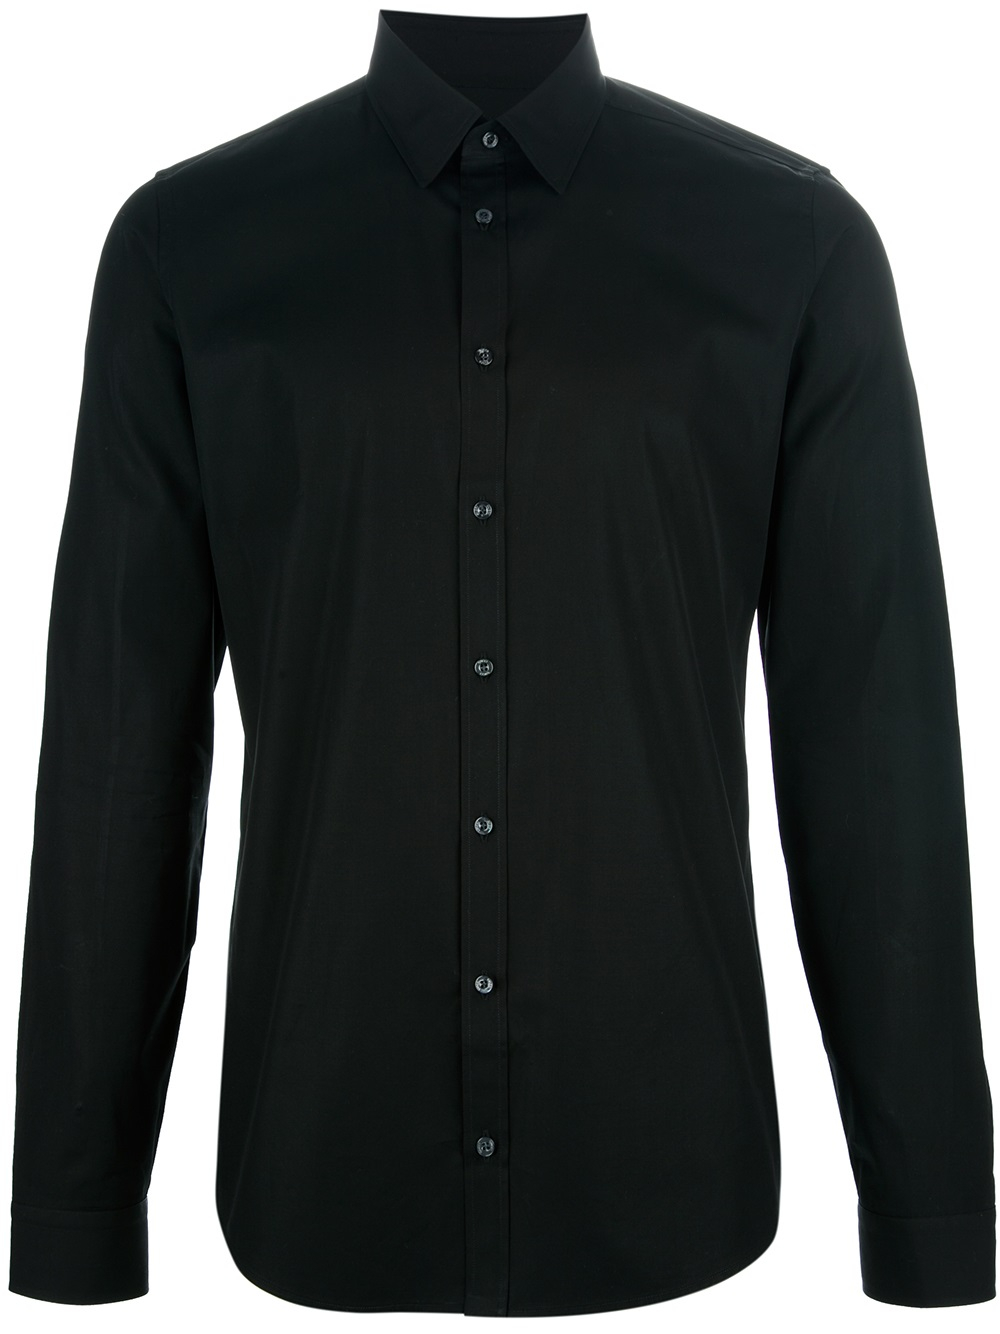 Gucci Button Down Shirt In Black For Men Lyst